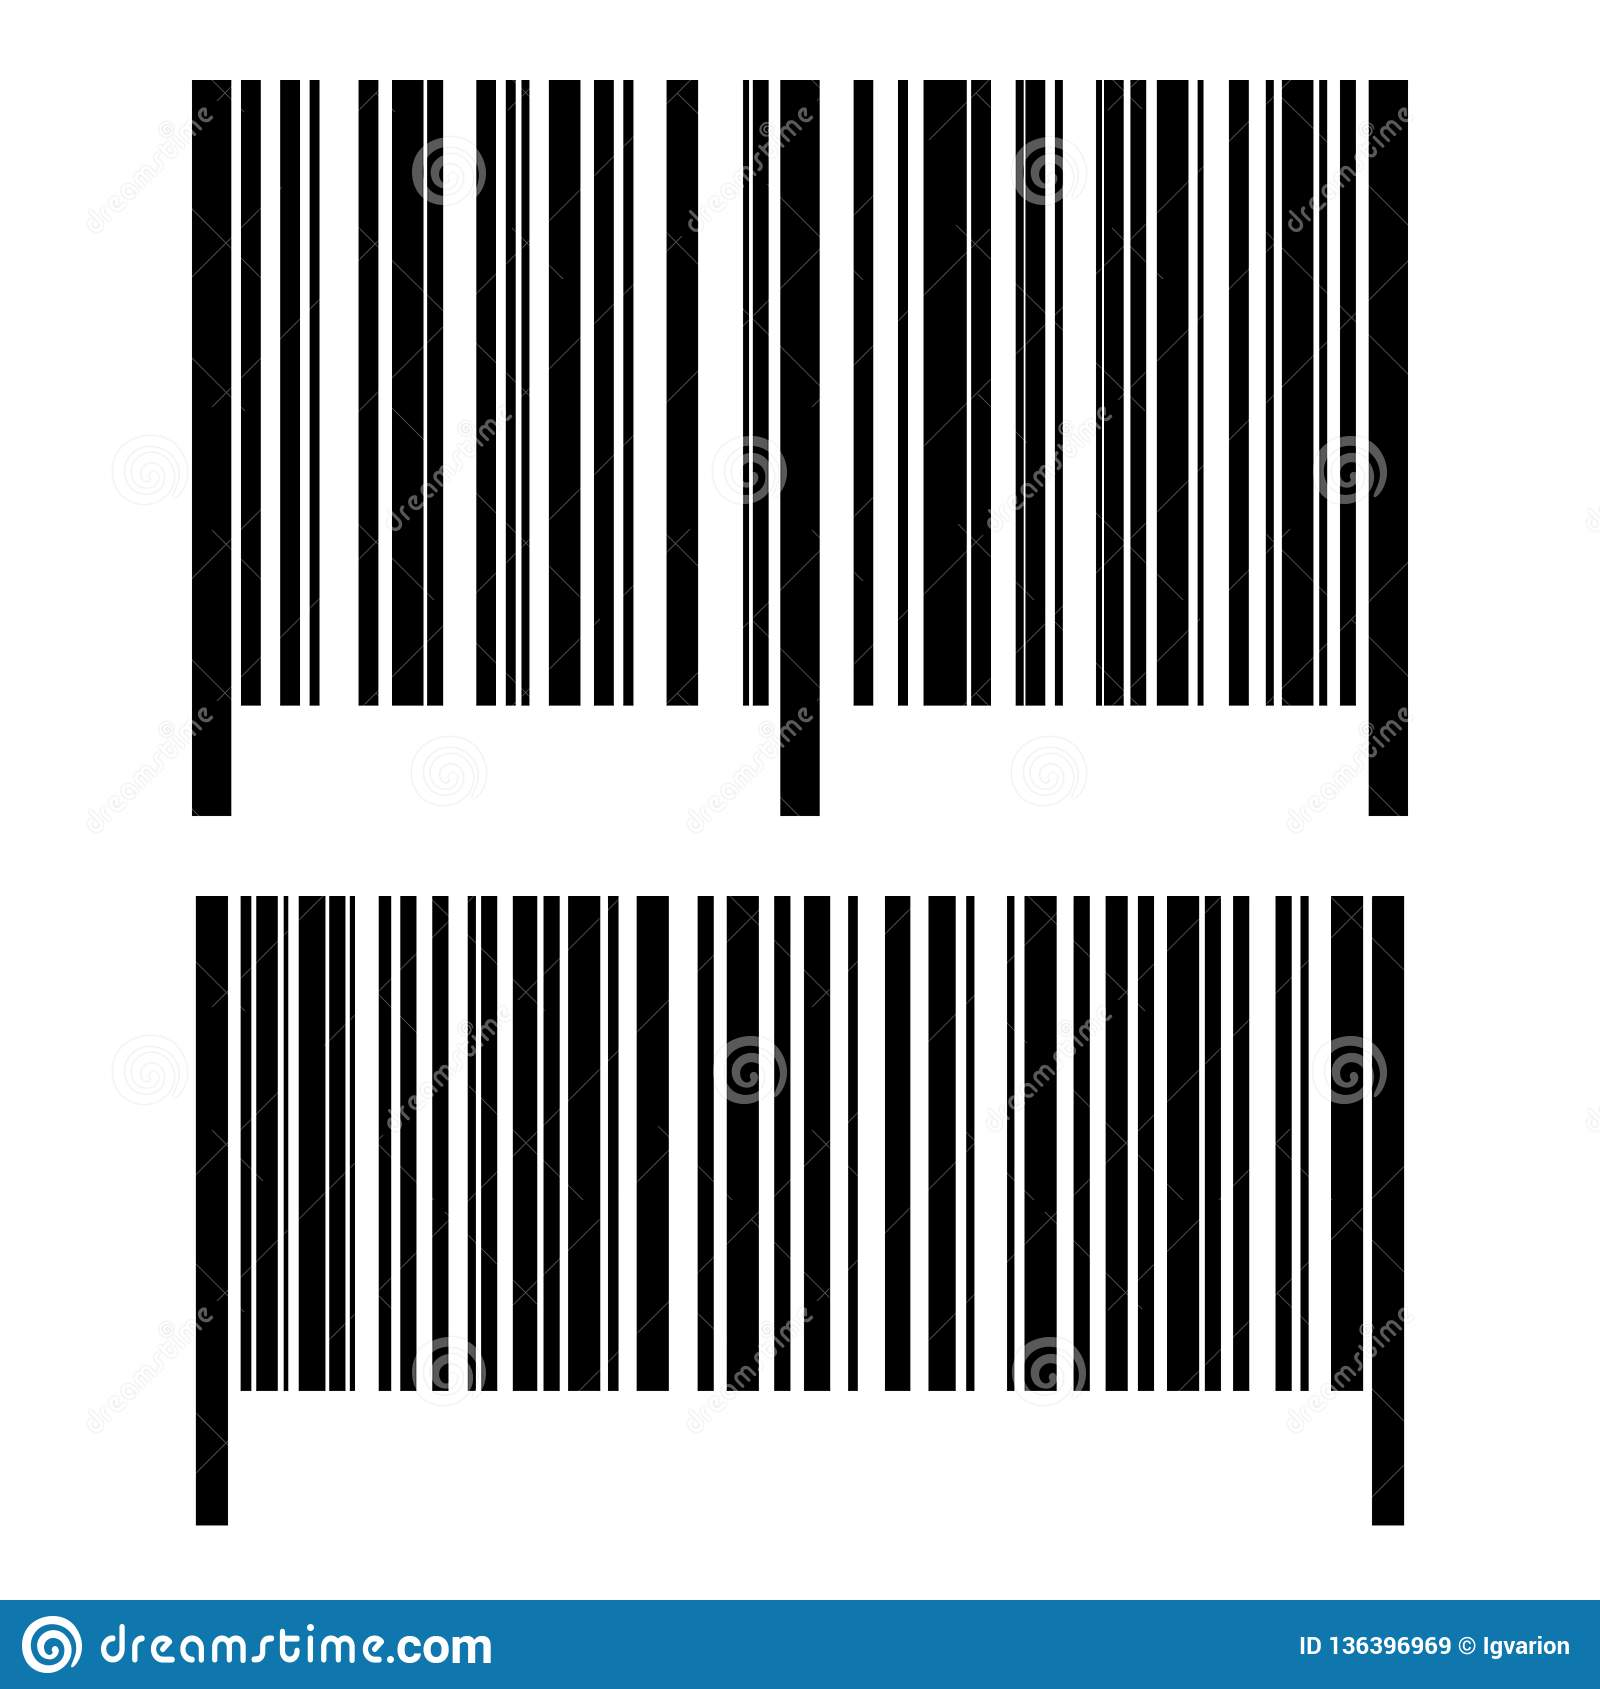 Realistic barcode set icon stock vector  Illustration of